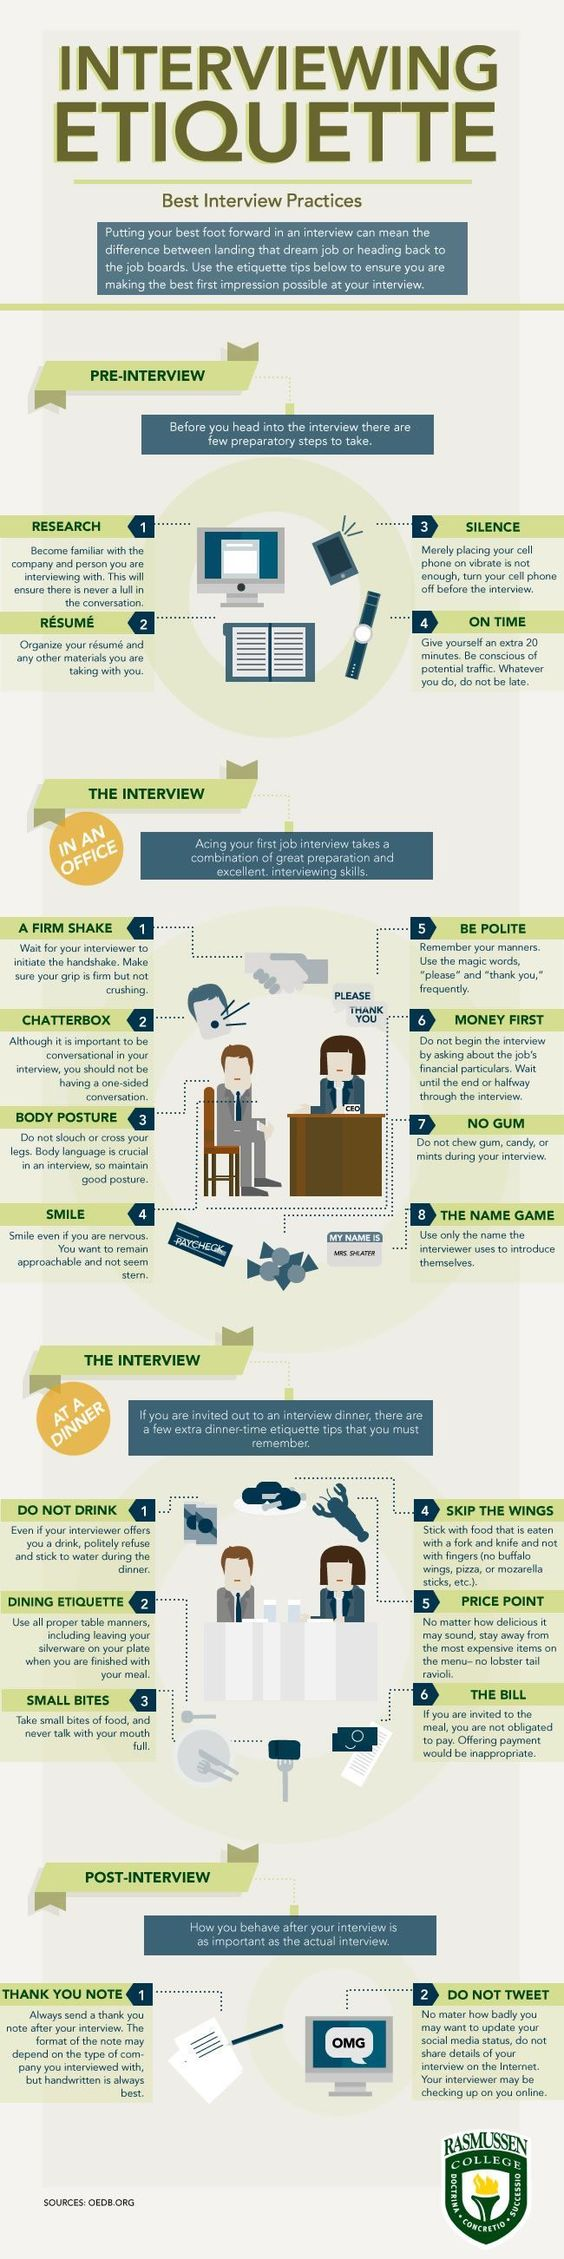 interviewing etiquette cheat sheet